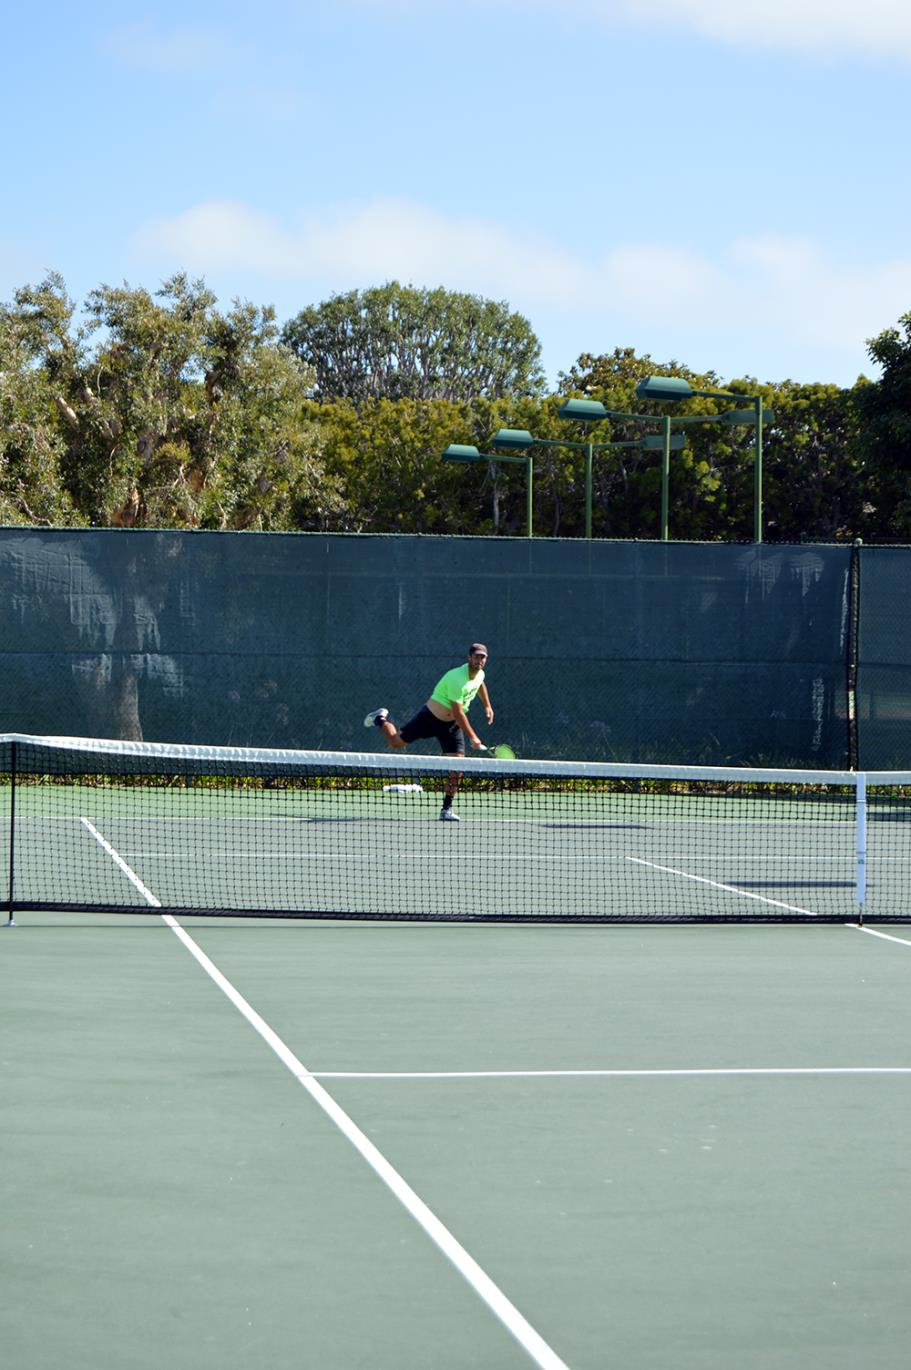 Player serving the ball at Live Oak Park Tennis Courts